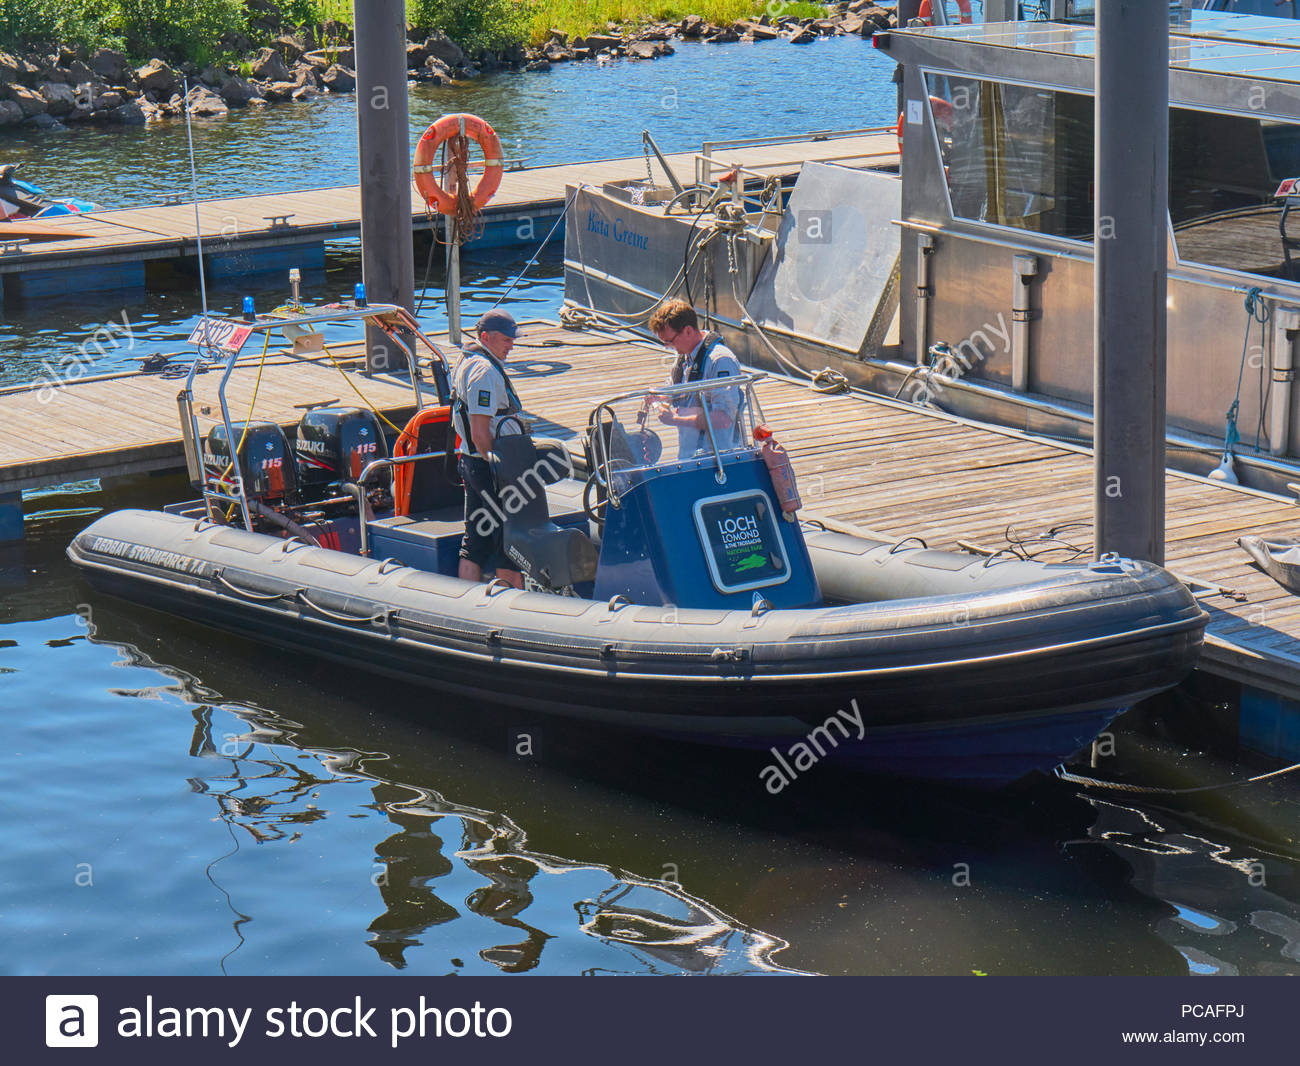 two patrol sailors in a redbay stormforce 7.4 boat with 2 suzuki 115 hp outboard motors on loch lomond trossachs national park scotland uk - Stock Image